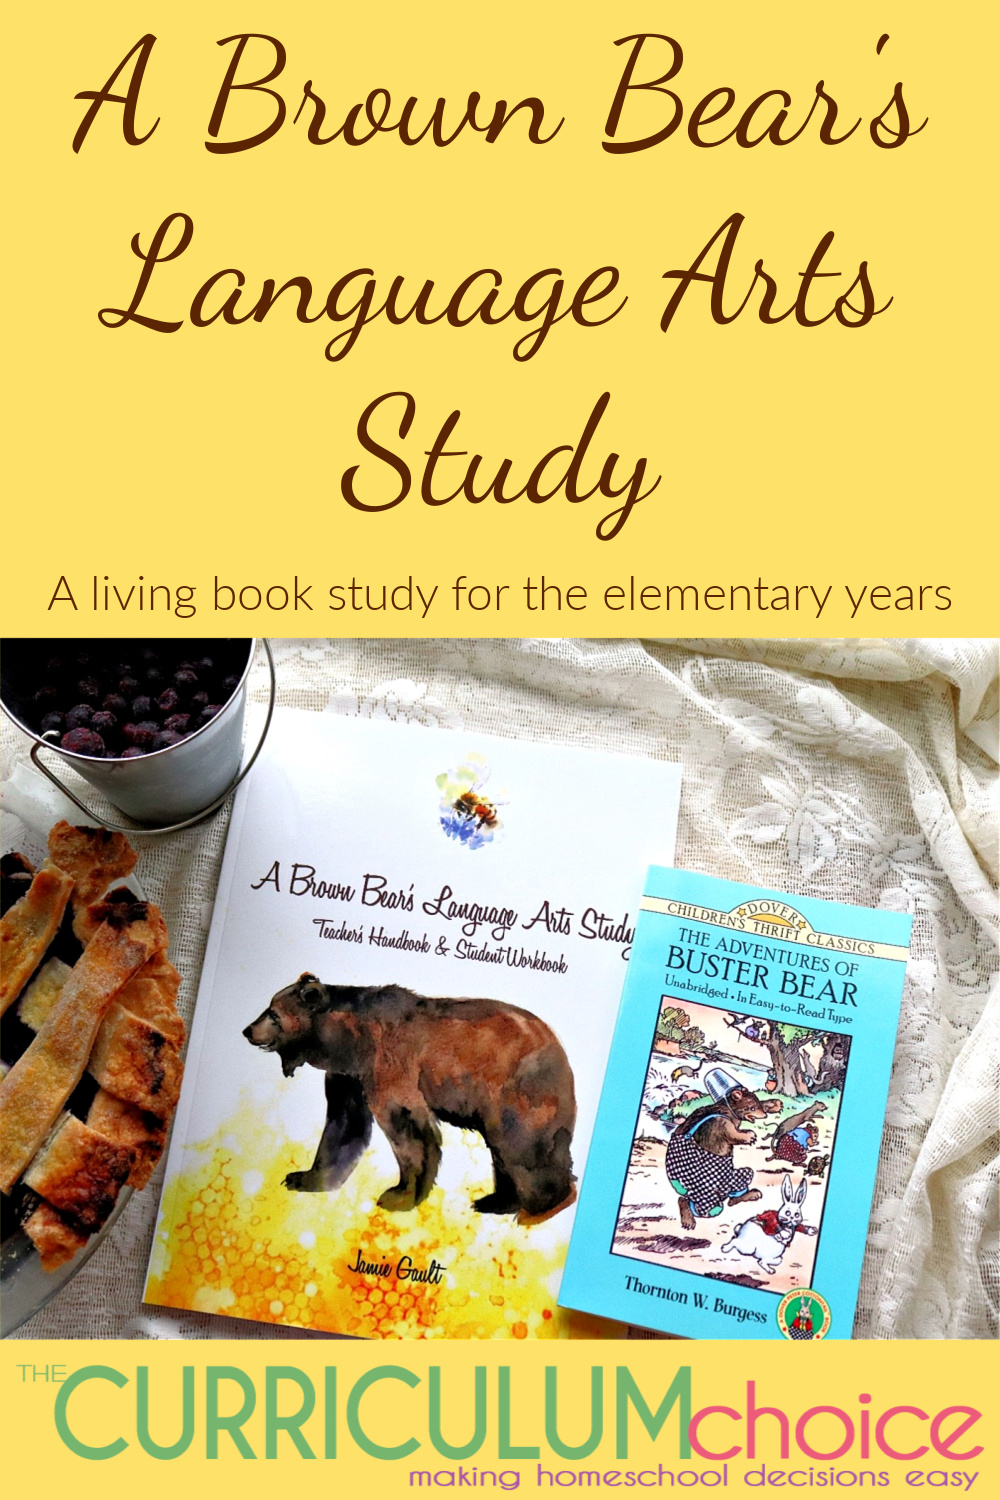 A Brown Bear's Literature Study is designed for 9-11 year old children, creatively presents a Bible-based, literature-inspired study that takes an imaginative adventure through Thornton Burgess's delightful story, The Adventures of Buster Bear.